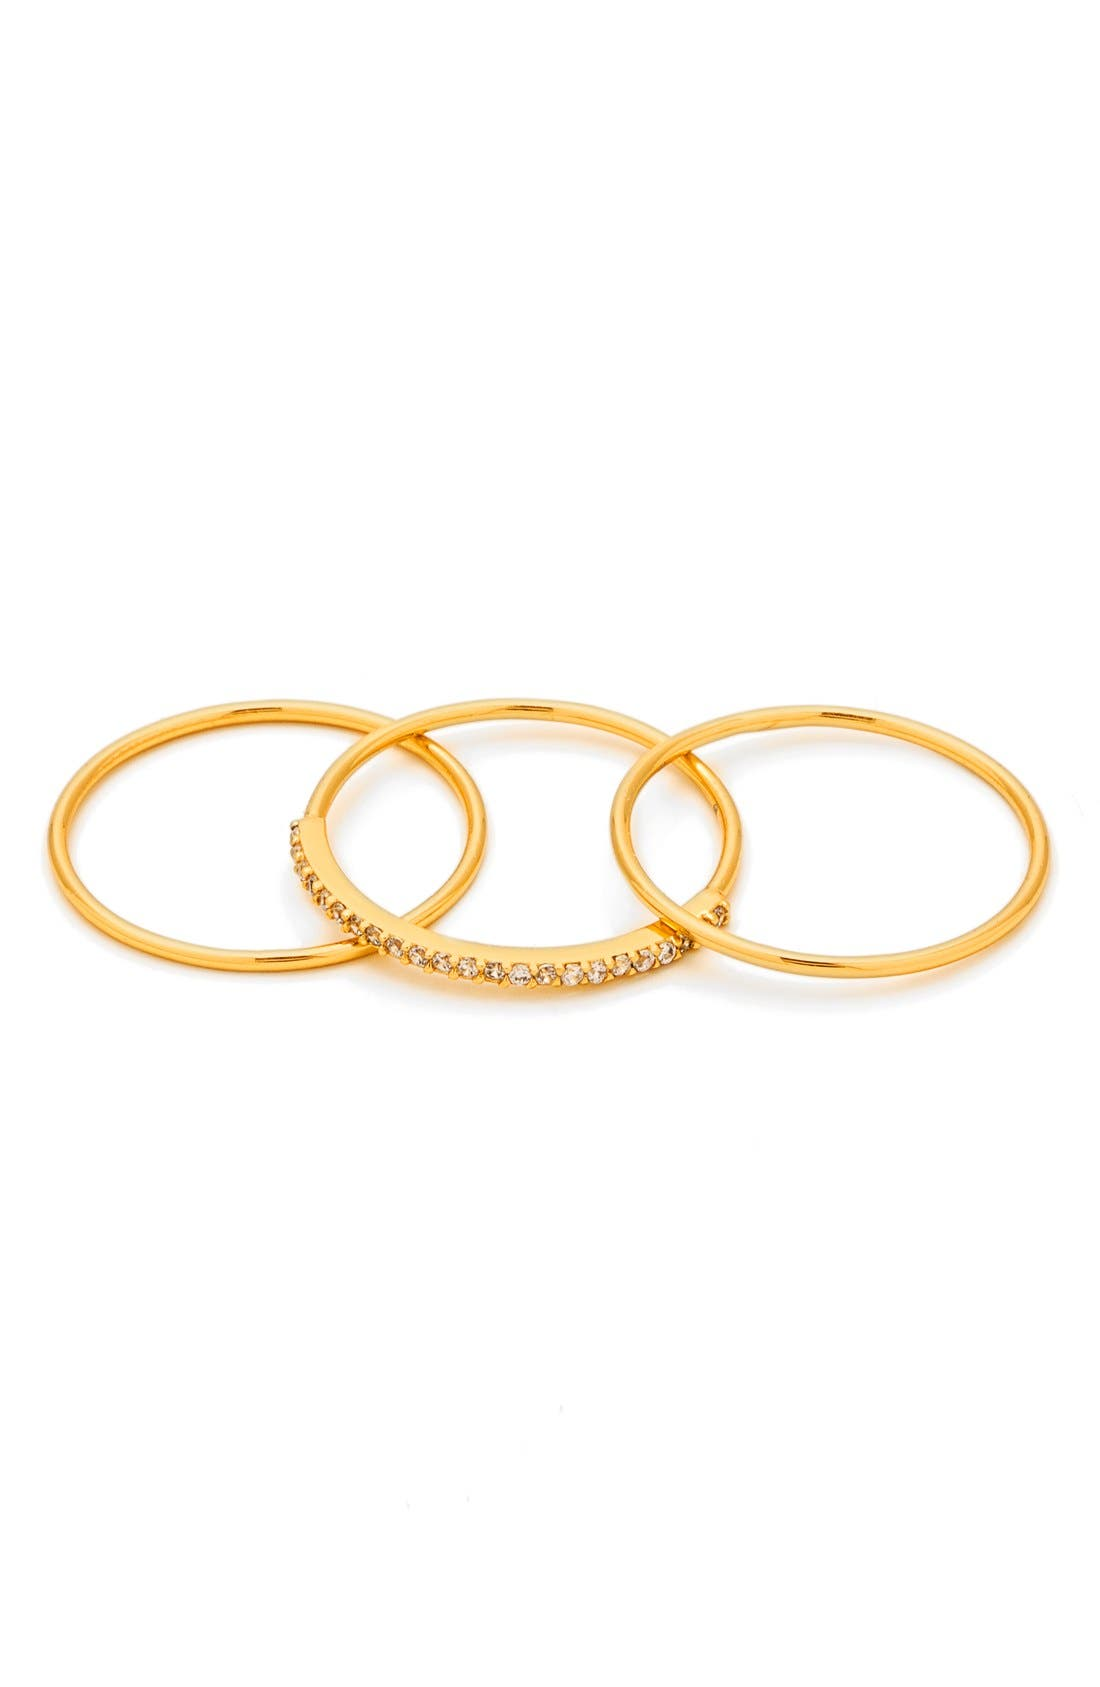 Shimmer Stackable Set of 3 Band Rings,                         Main,                         color, 710